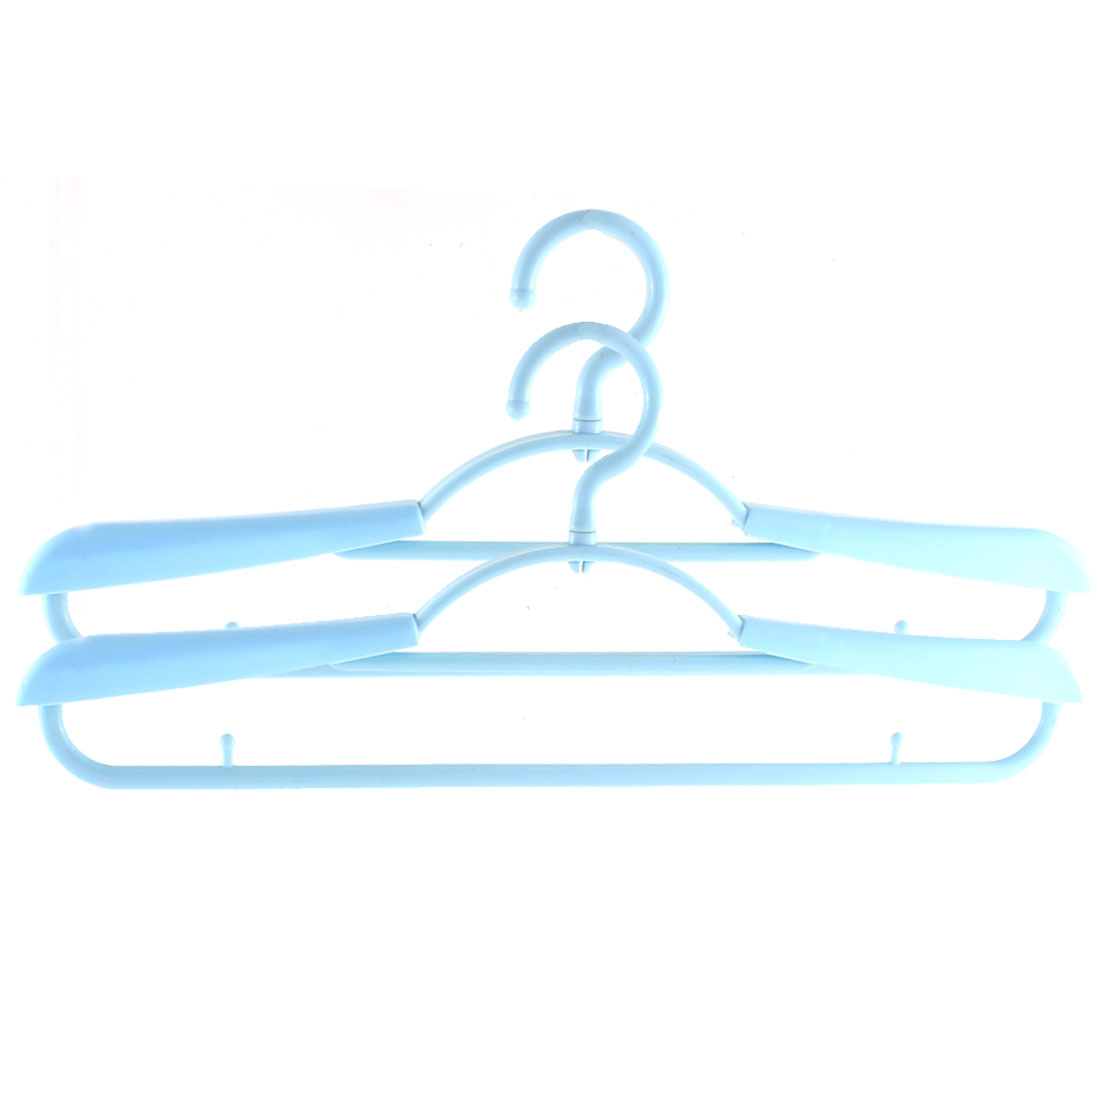 2pcs Plastic Space Saving Non-Slip Household Clothes Clothing Hanger Blue